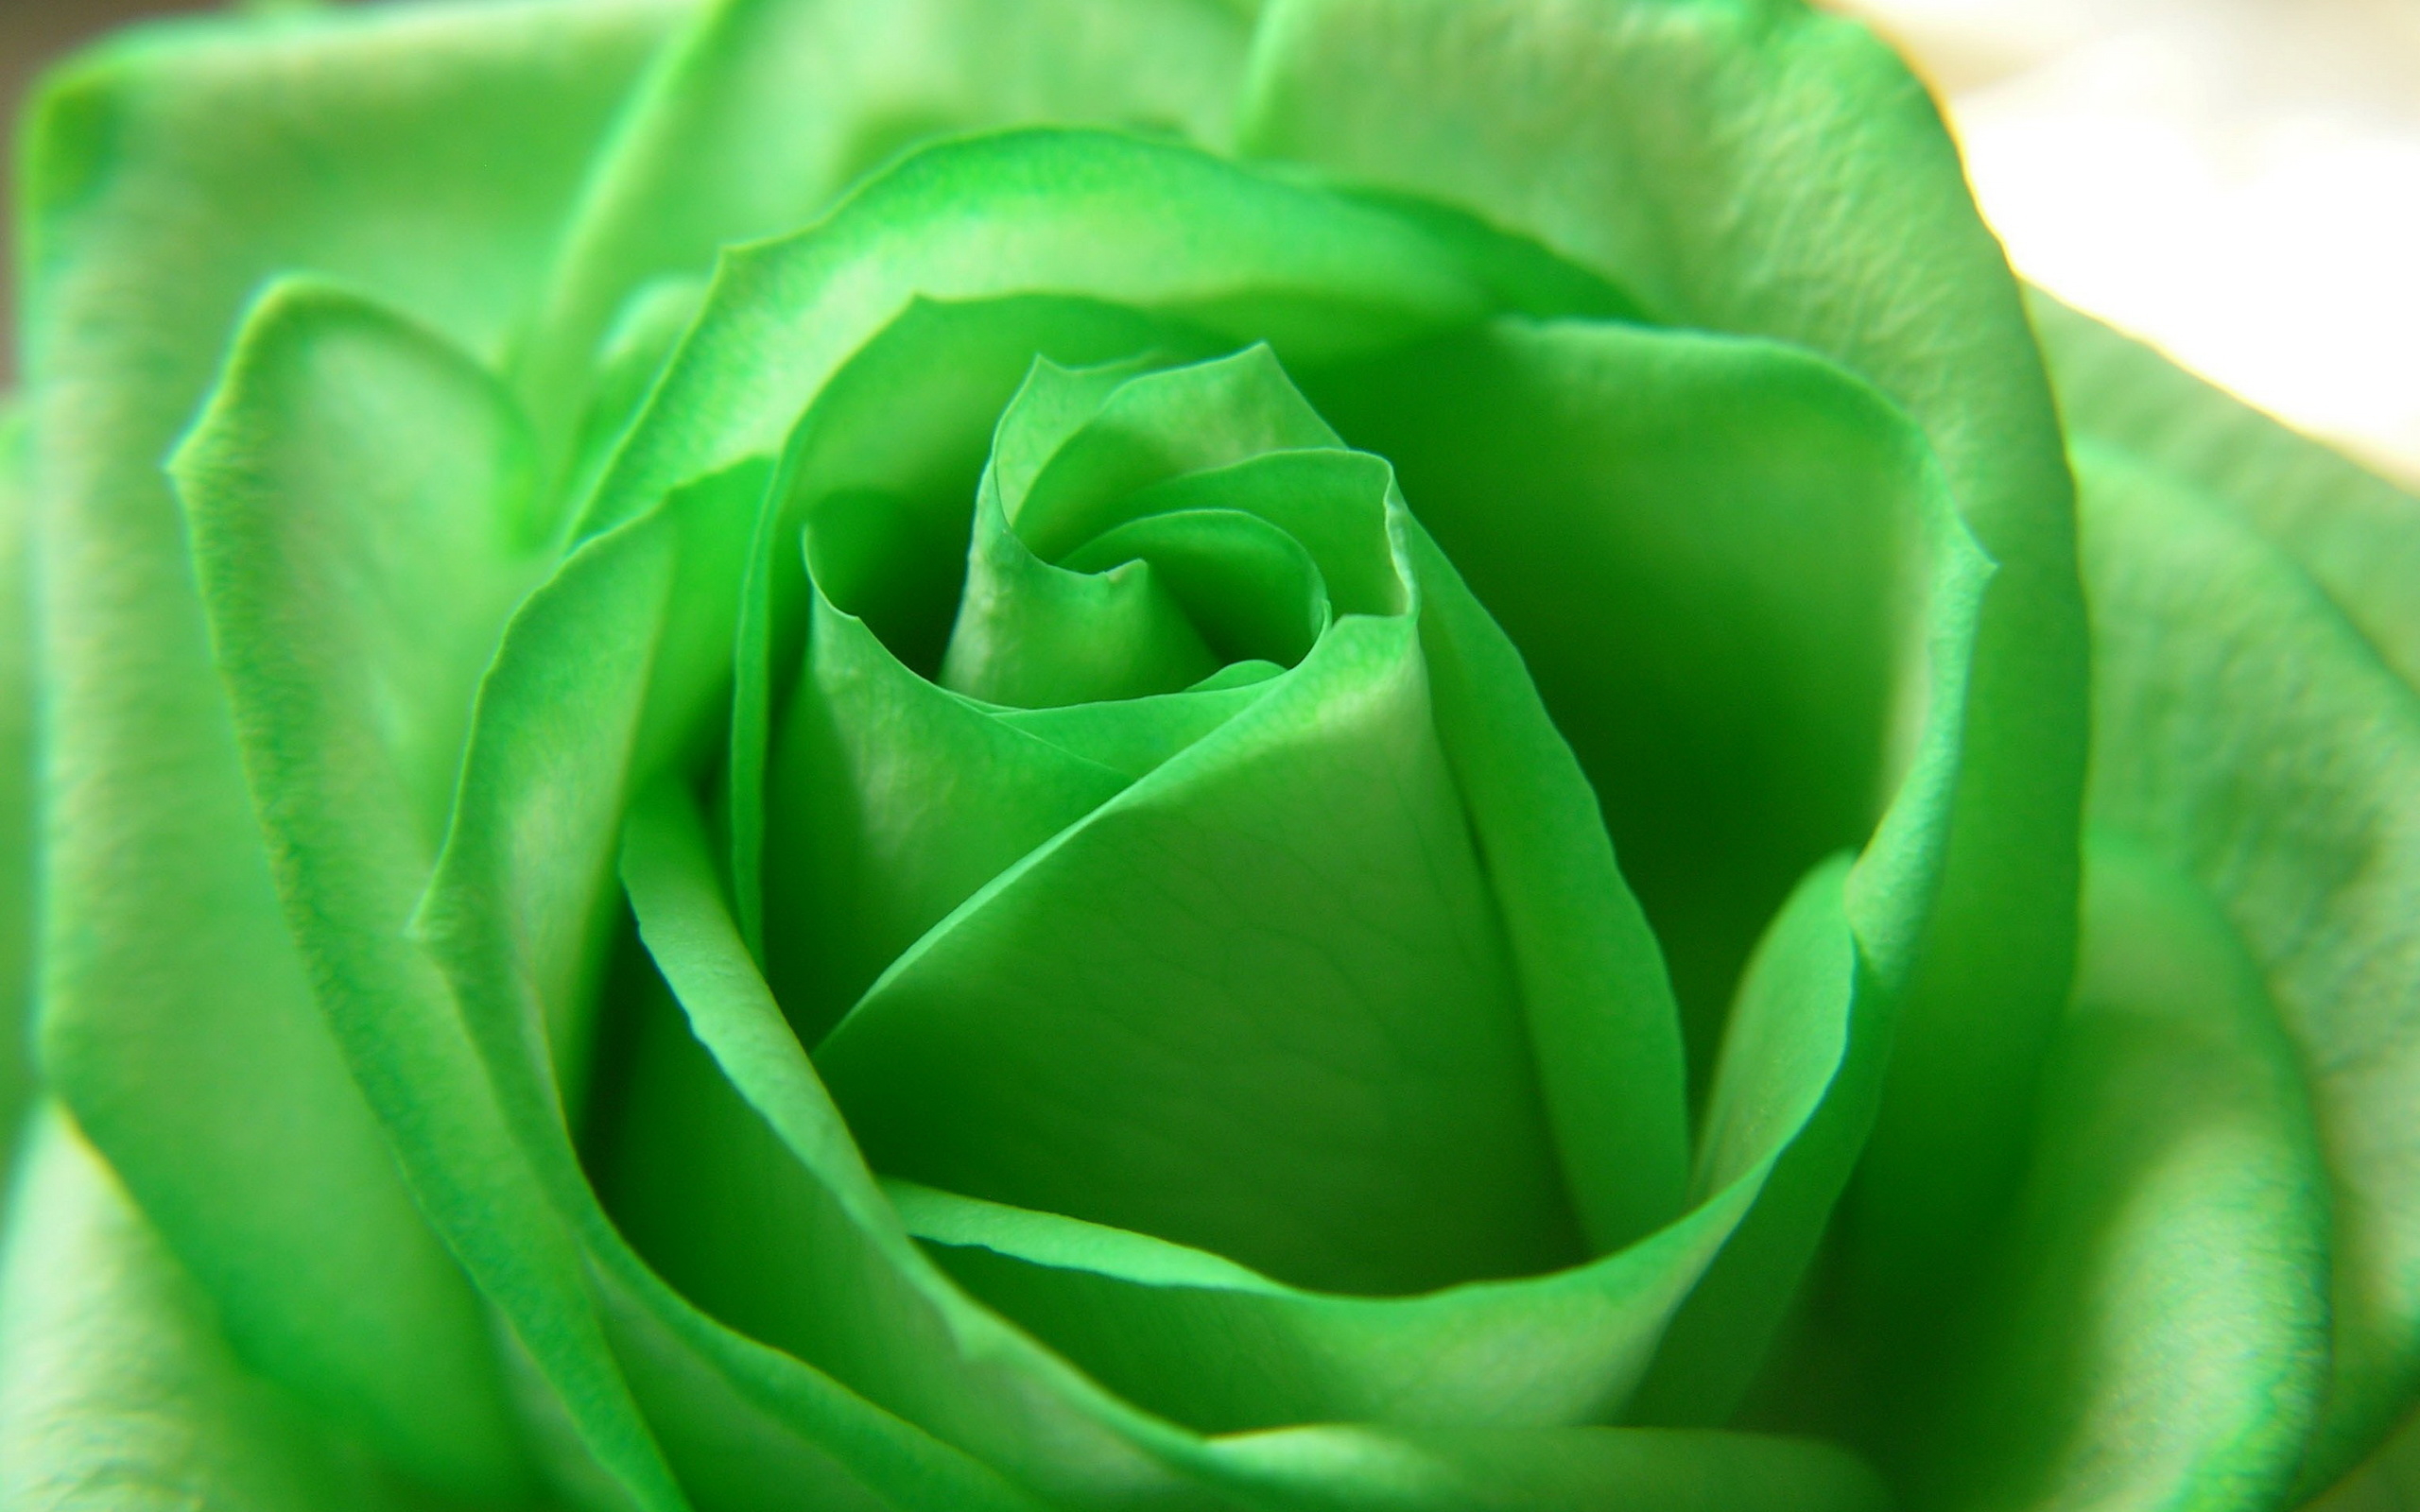 Green Flowers 17352 2560x1600 Px ~ HDWallSource.com